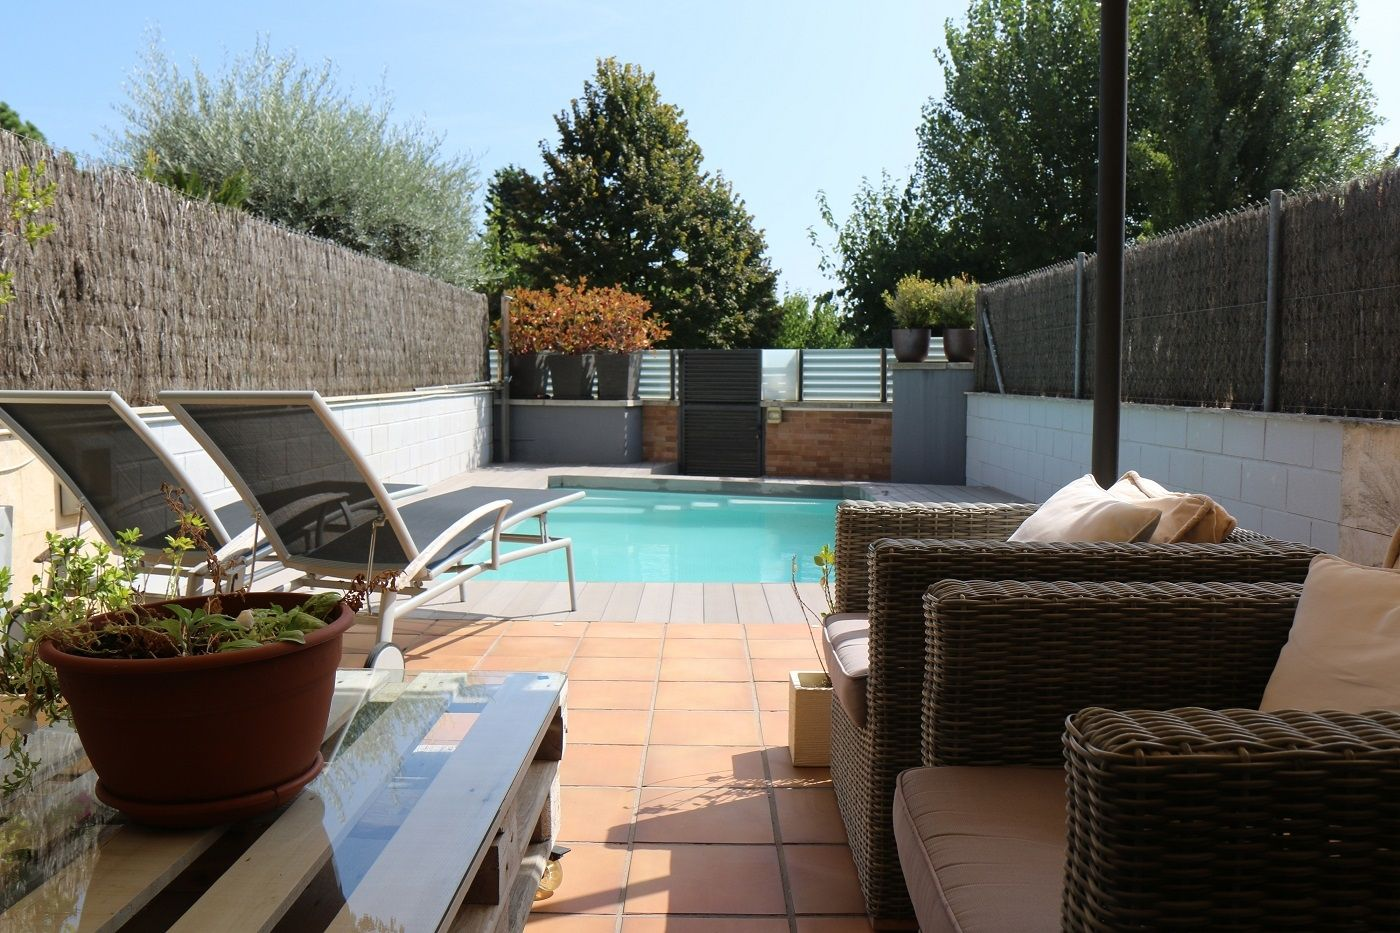 Semi detached house  Carrer maresme. Casa reformada con piscina